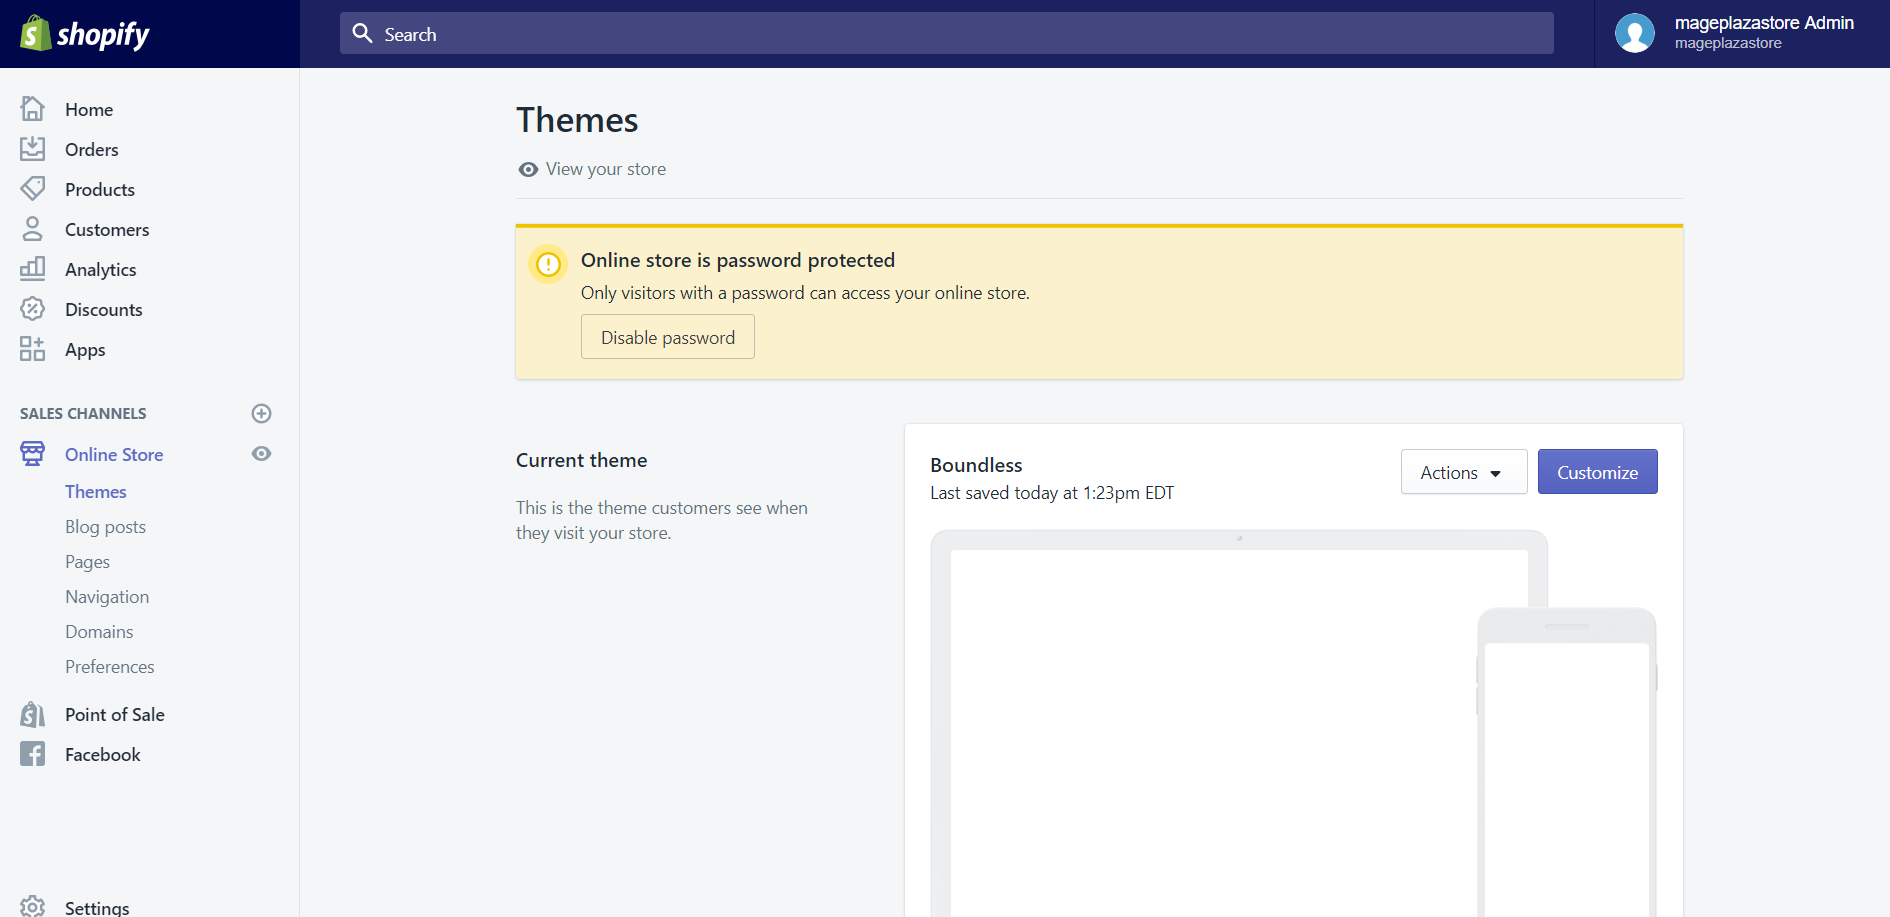 How to Share Theme Preview With Others on Shopify